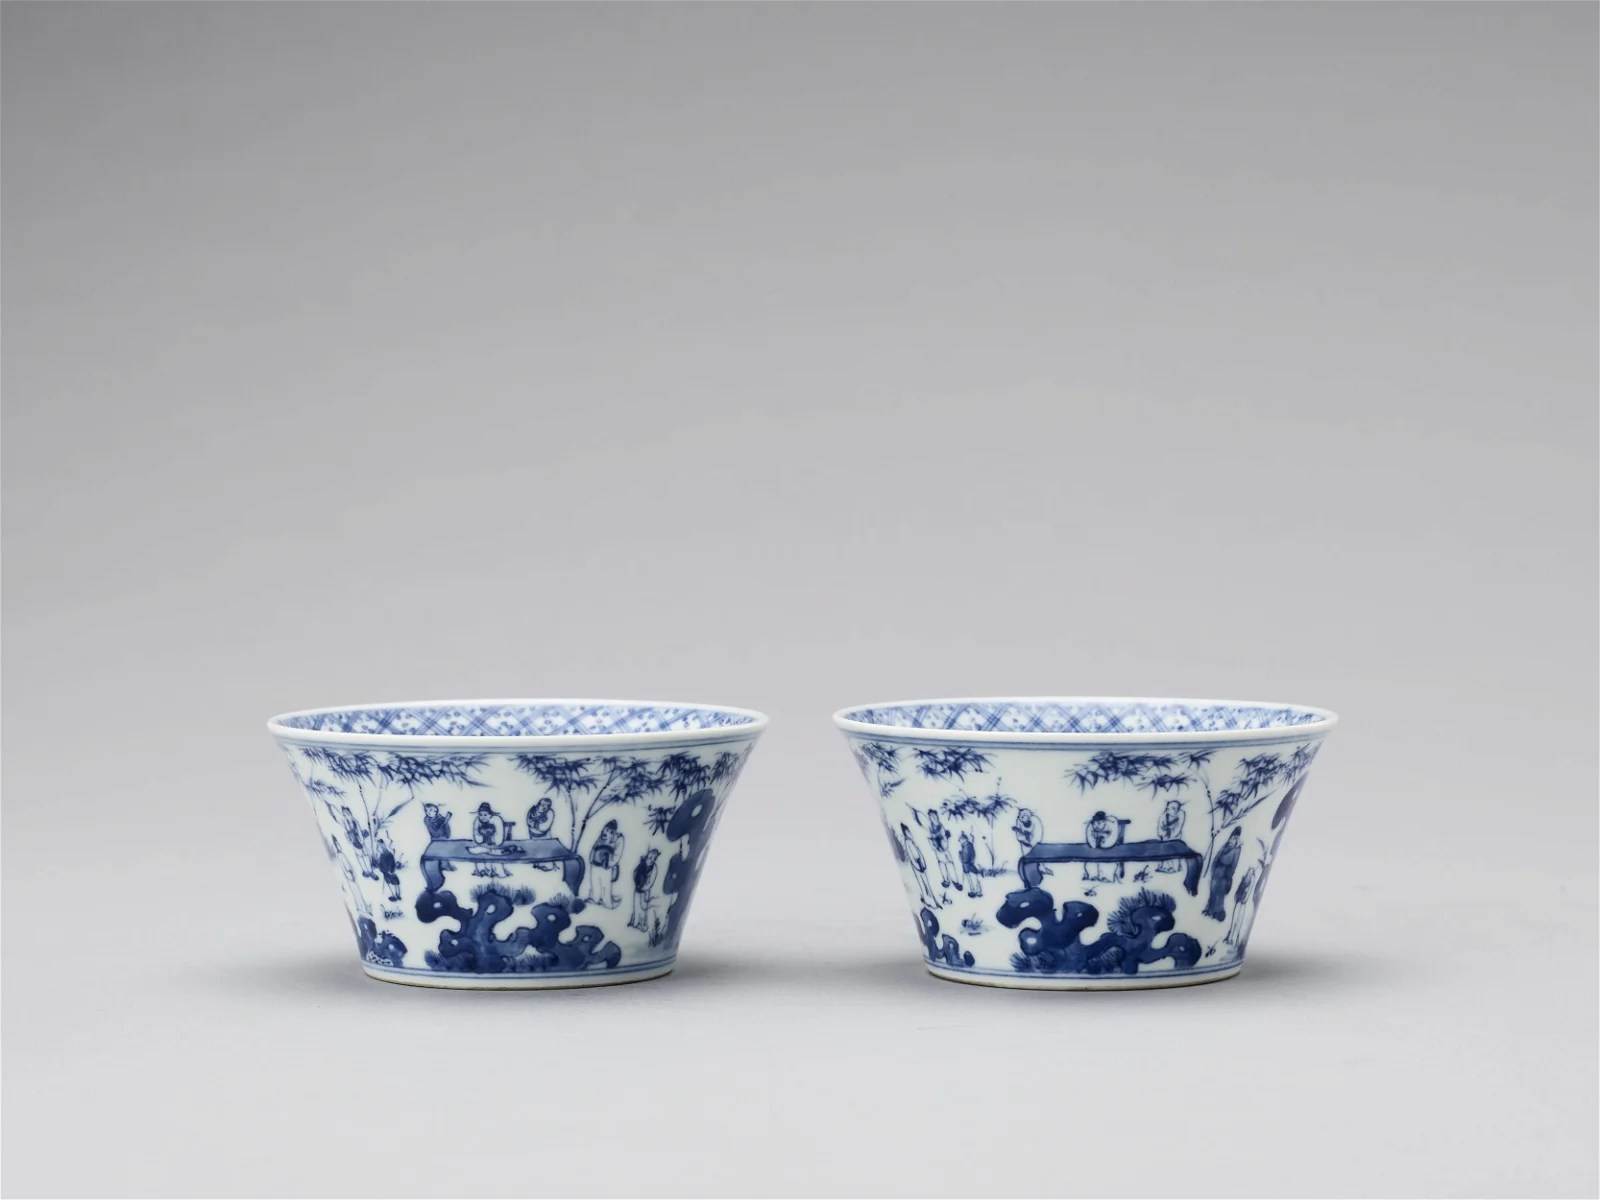 A PAIR OF BLUE AND WHITE PORCELAIN CUPS, REPUBLIC